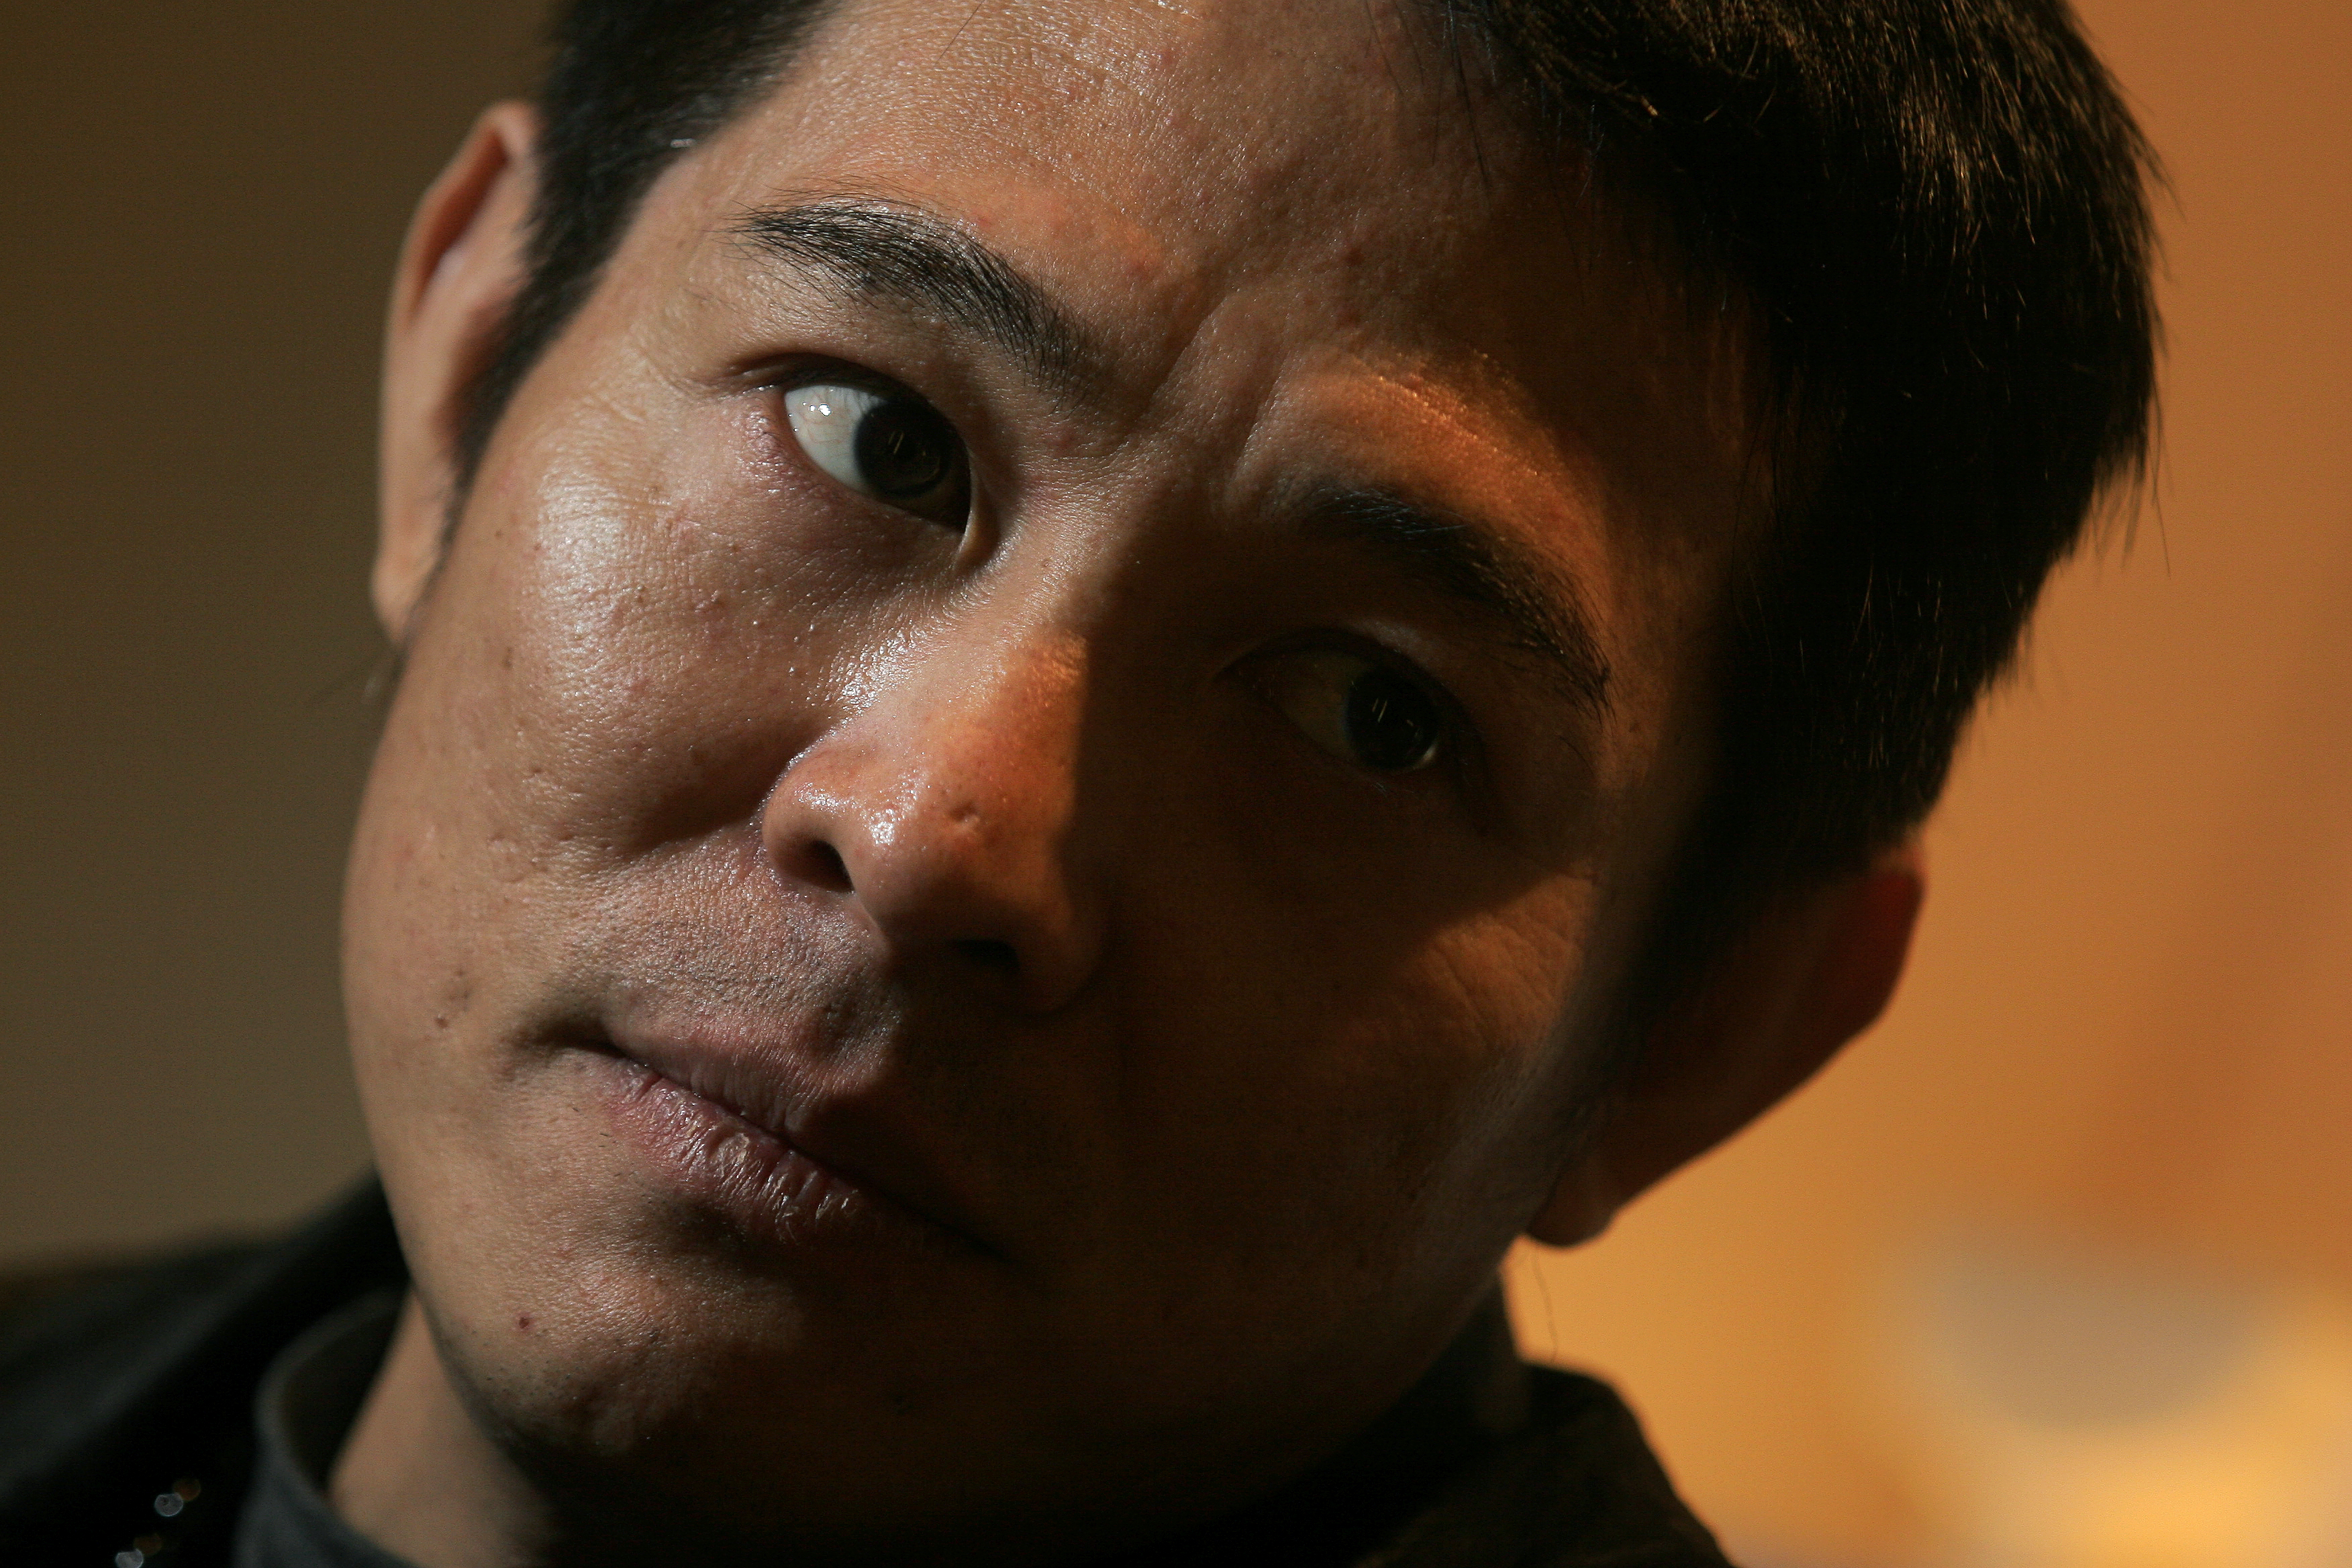 Interview with actor Jet Li Lianjie at the Landmark Mandarin Oriental Hotel, Central. 22 January 2006.